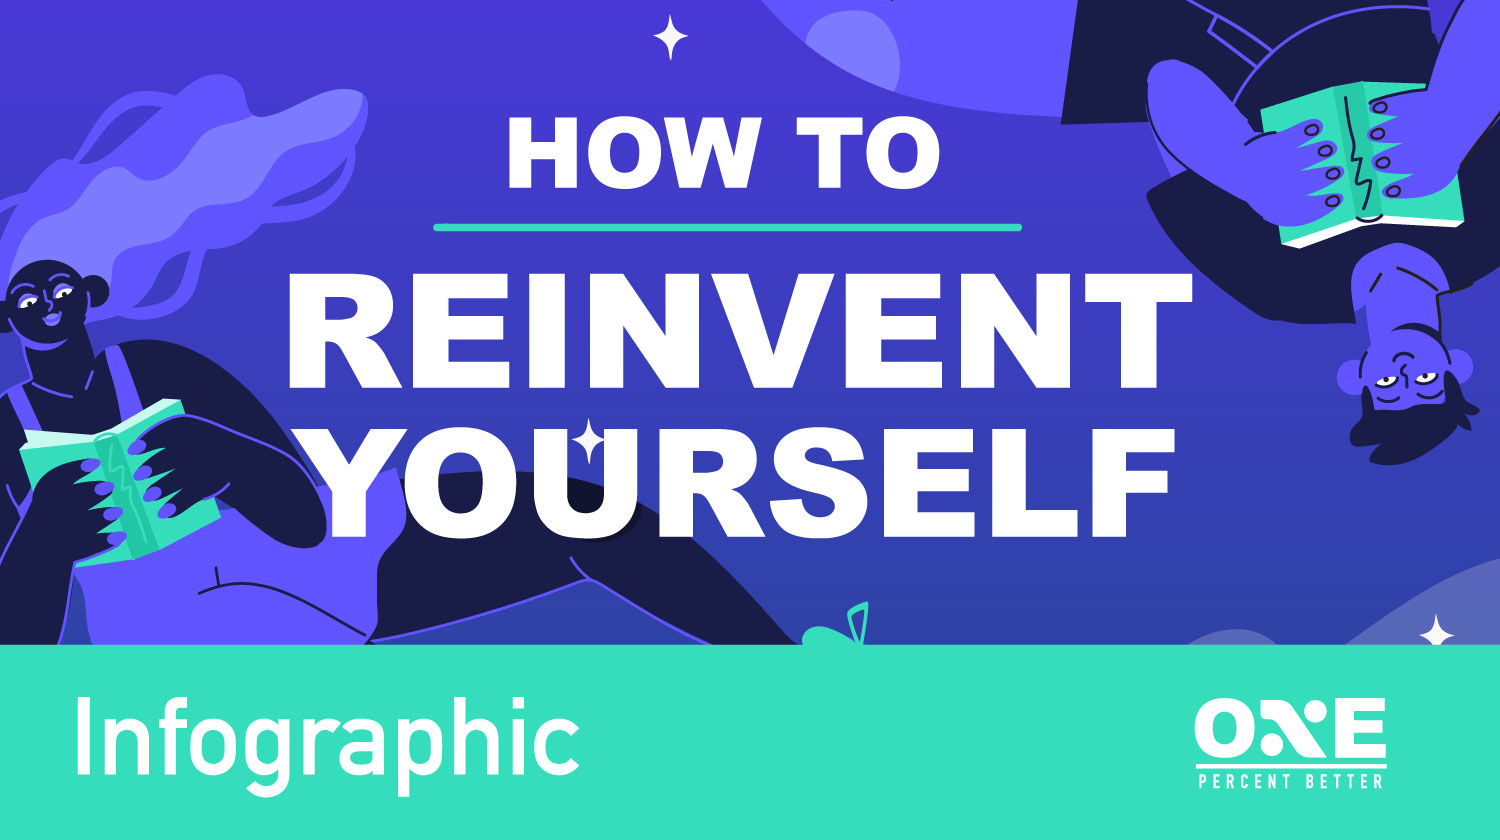 How to Reinvent Yourself and Improve Your Well-Being [INFOGRAPHIC]